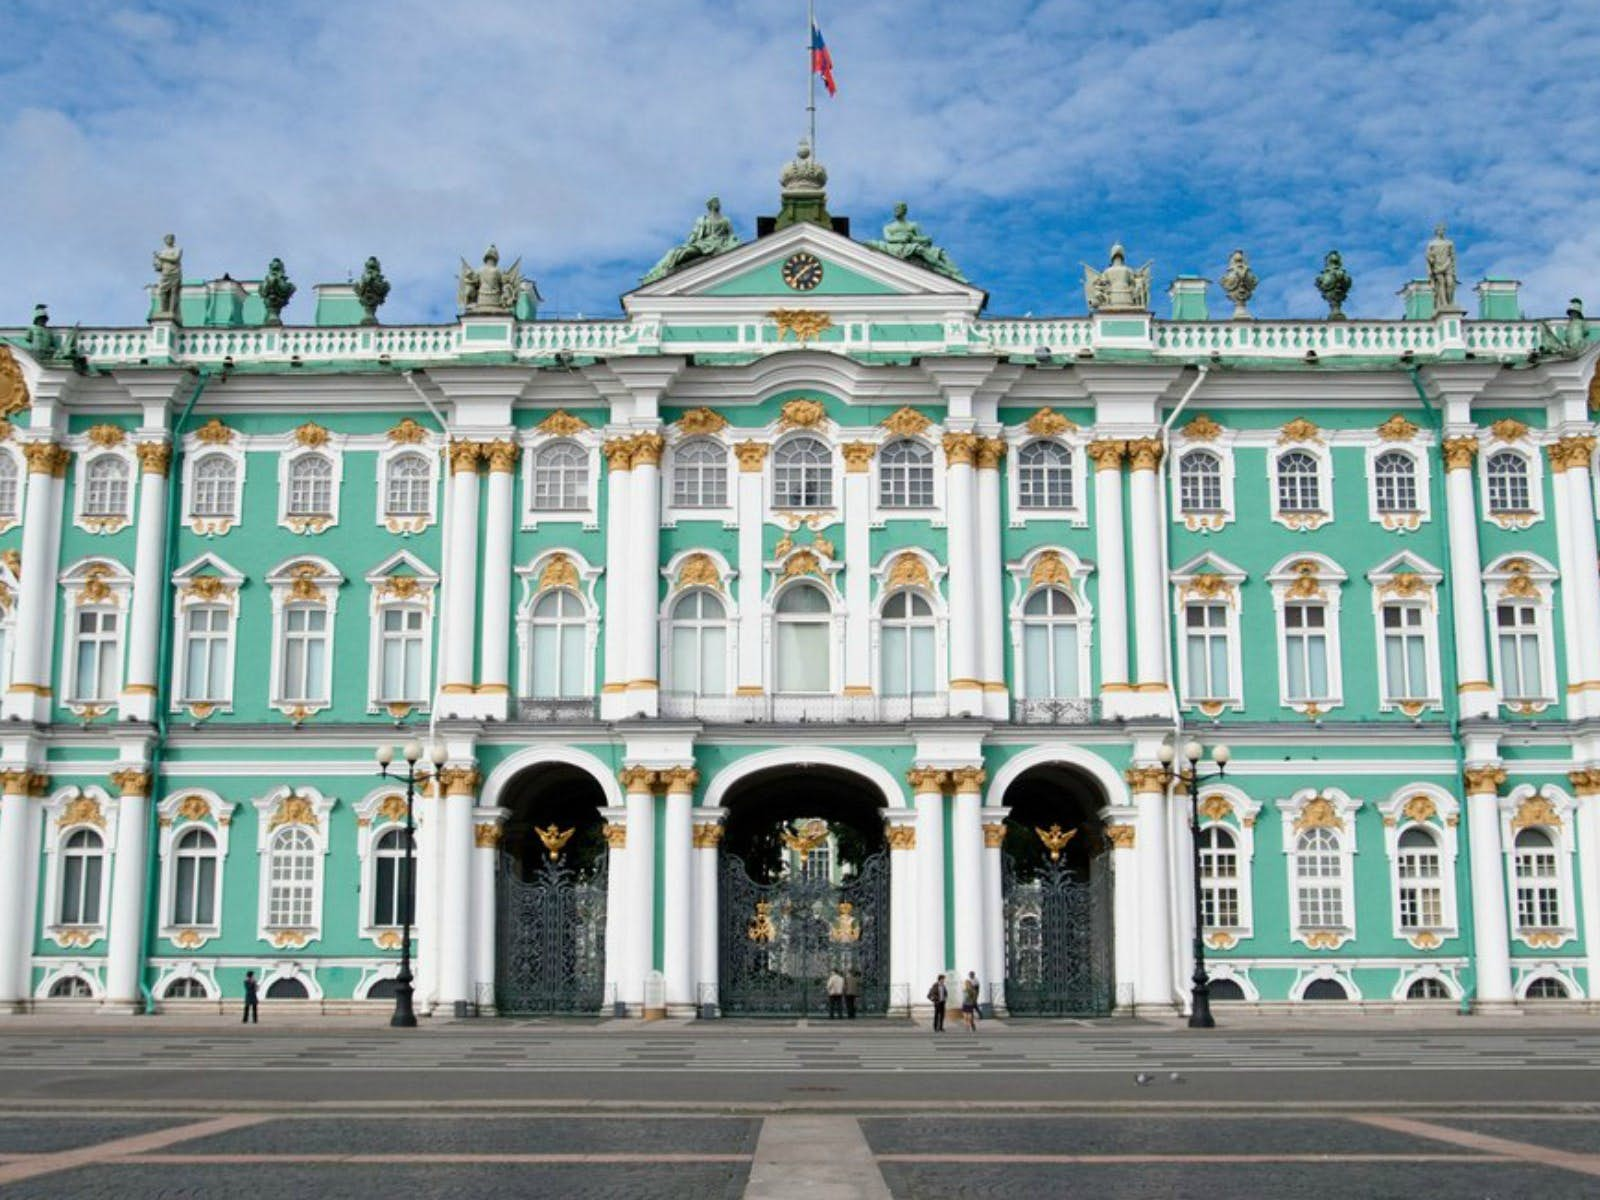 Winter Palace | St Petersburg, Russia Attractions - Lonely Planet